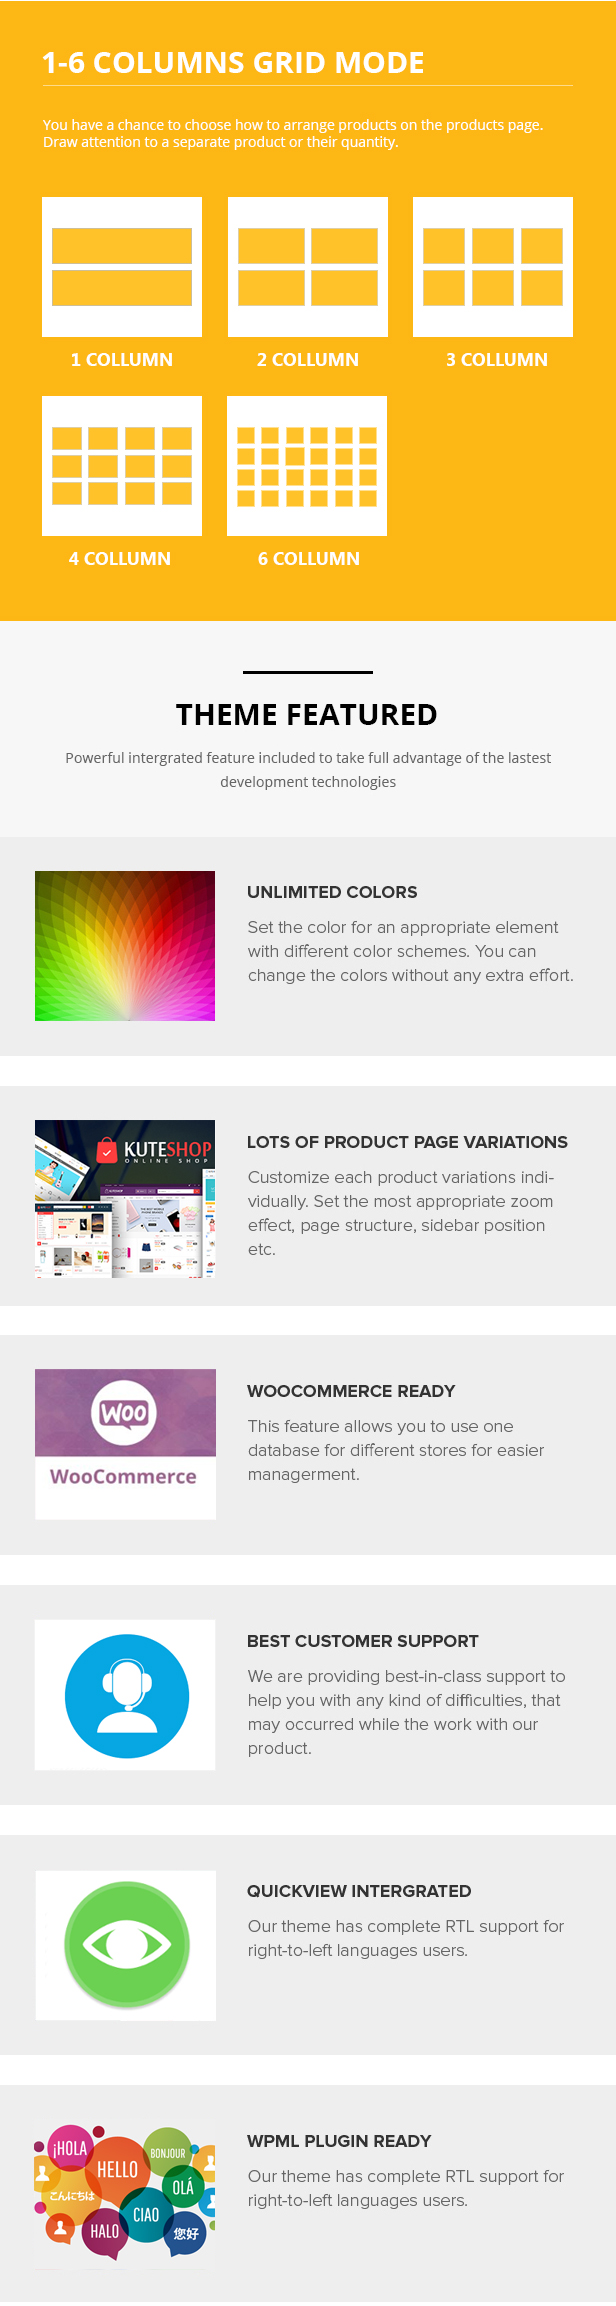 Kute Shop - Super Markt Responsive WooComerce WordPress Template